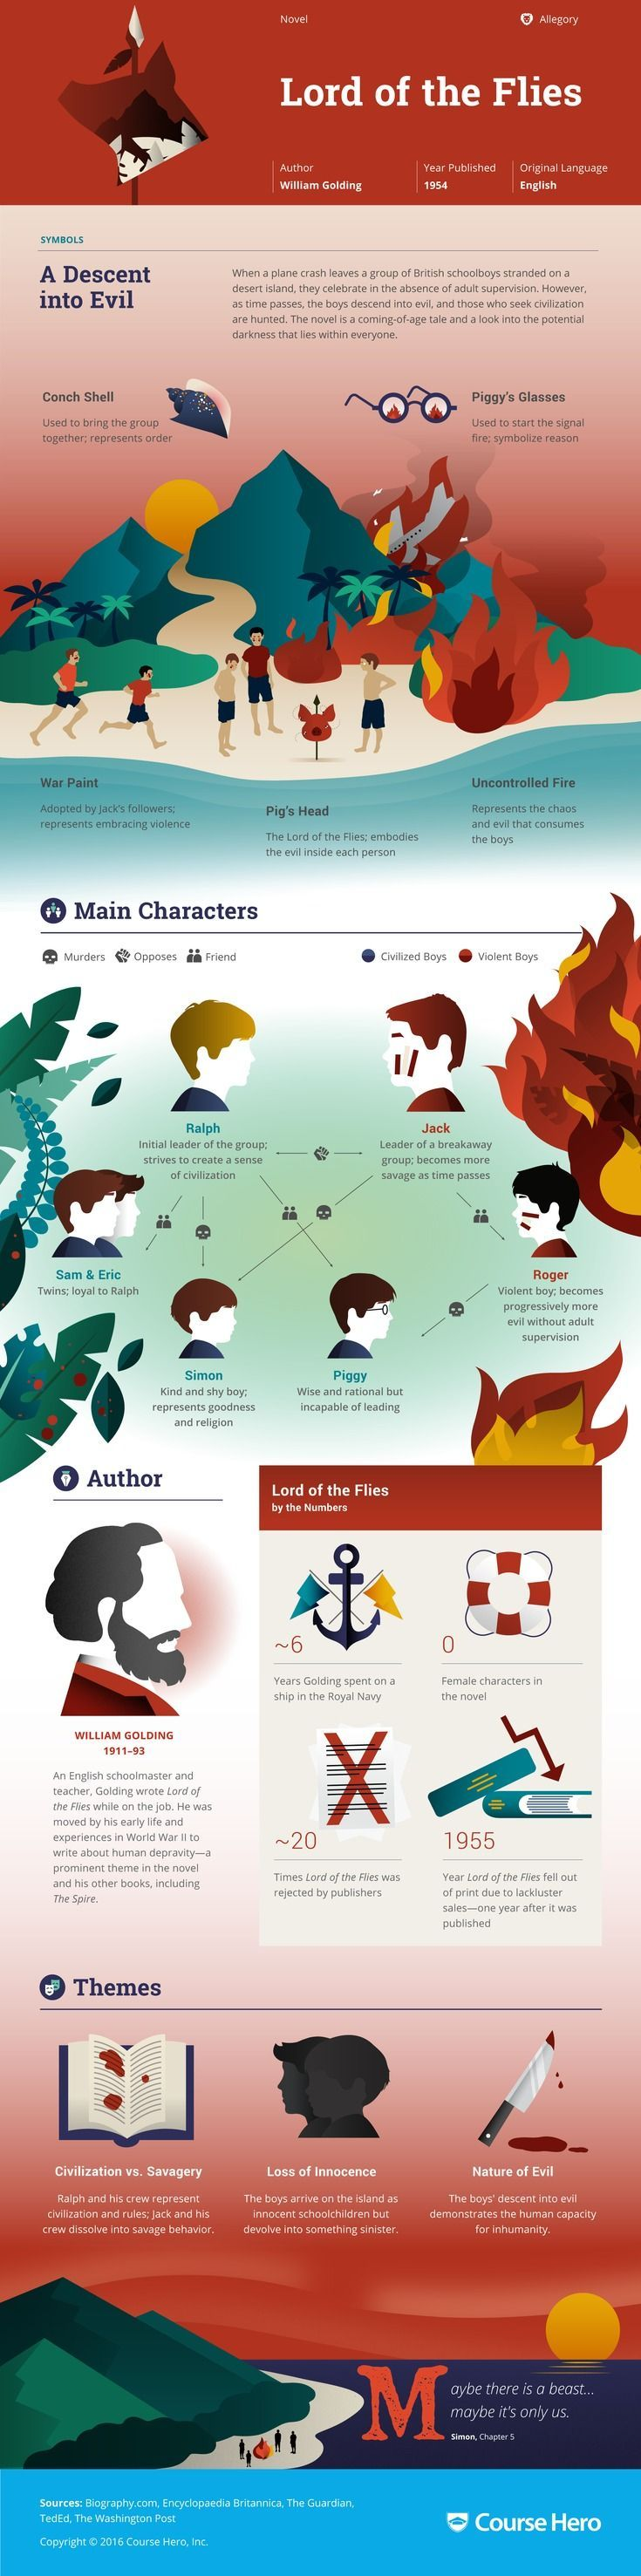 17 best ideas about night elie wiesel summary music this coursehero infographic on lord of the flies is both visually stunning and informative